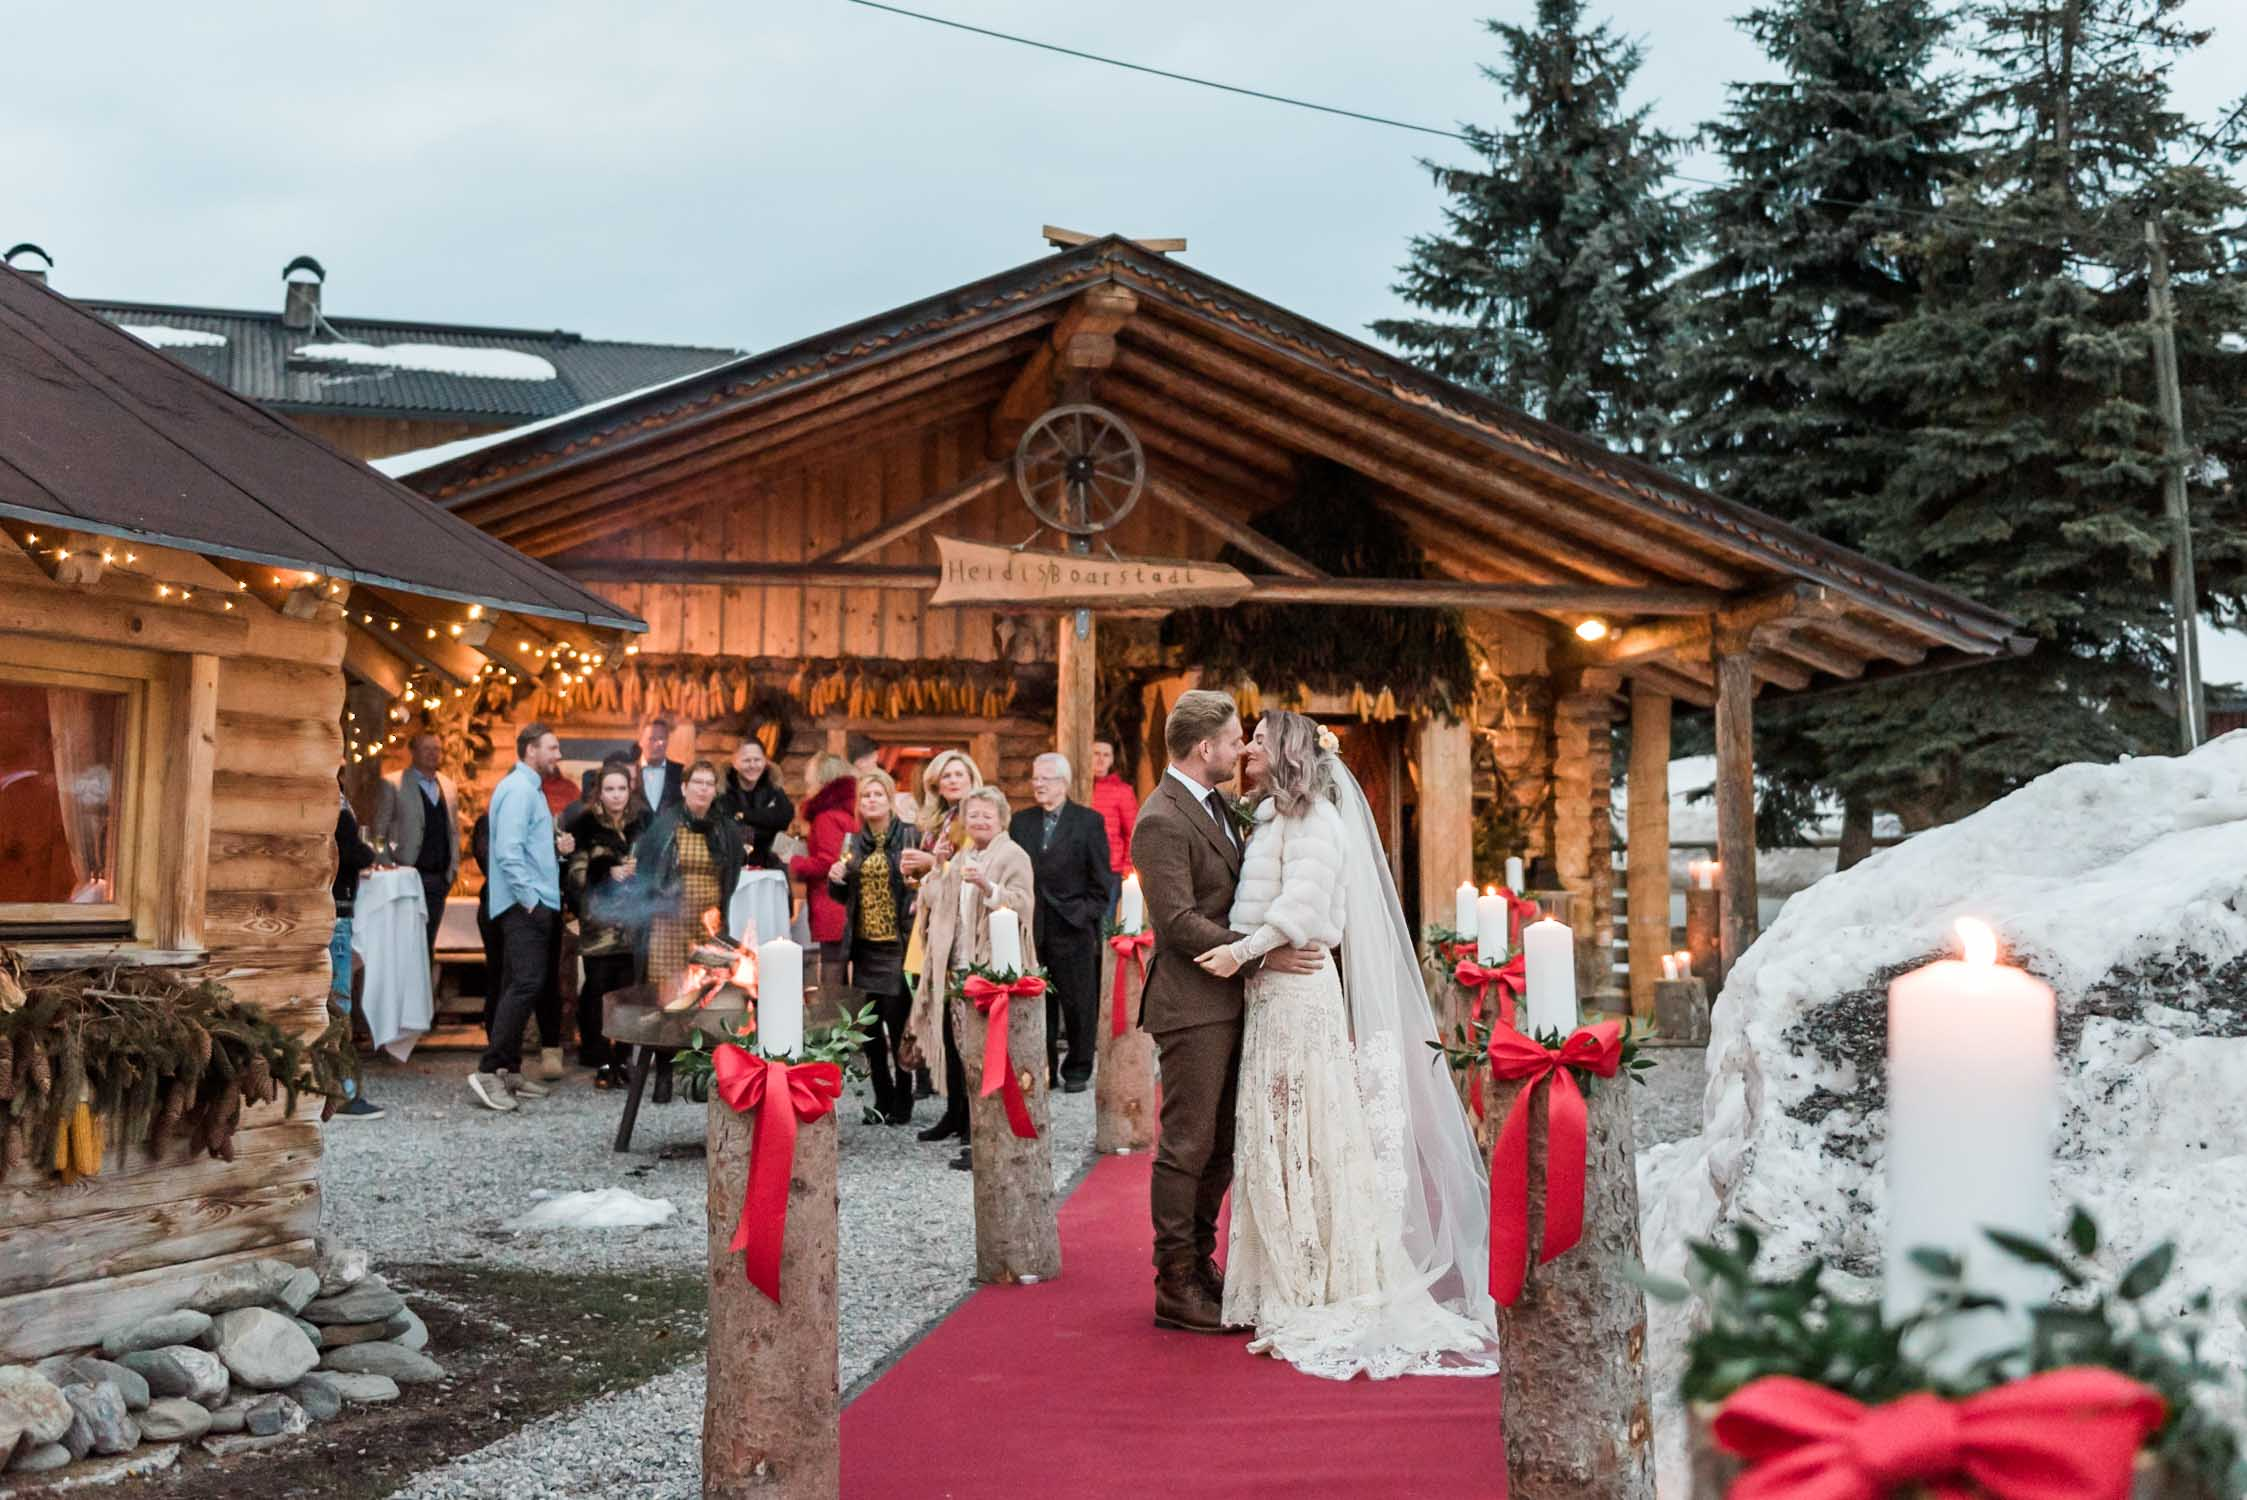 A bride and groom at their destination winter wedding in Westendorf, Tyrol, Austria. Captured by a destination wedding photographer for intimate weddings and elopements in Europe